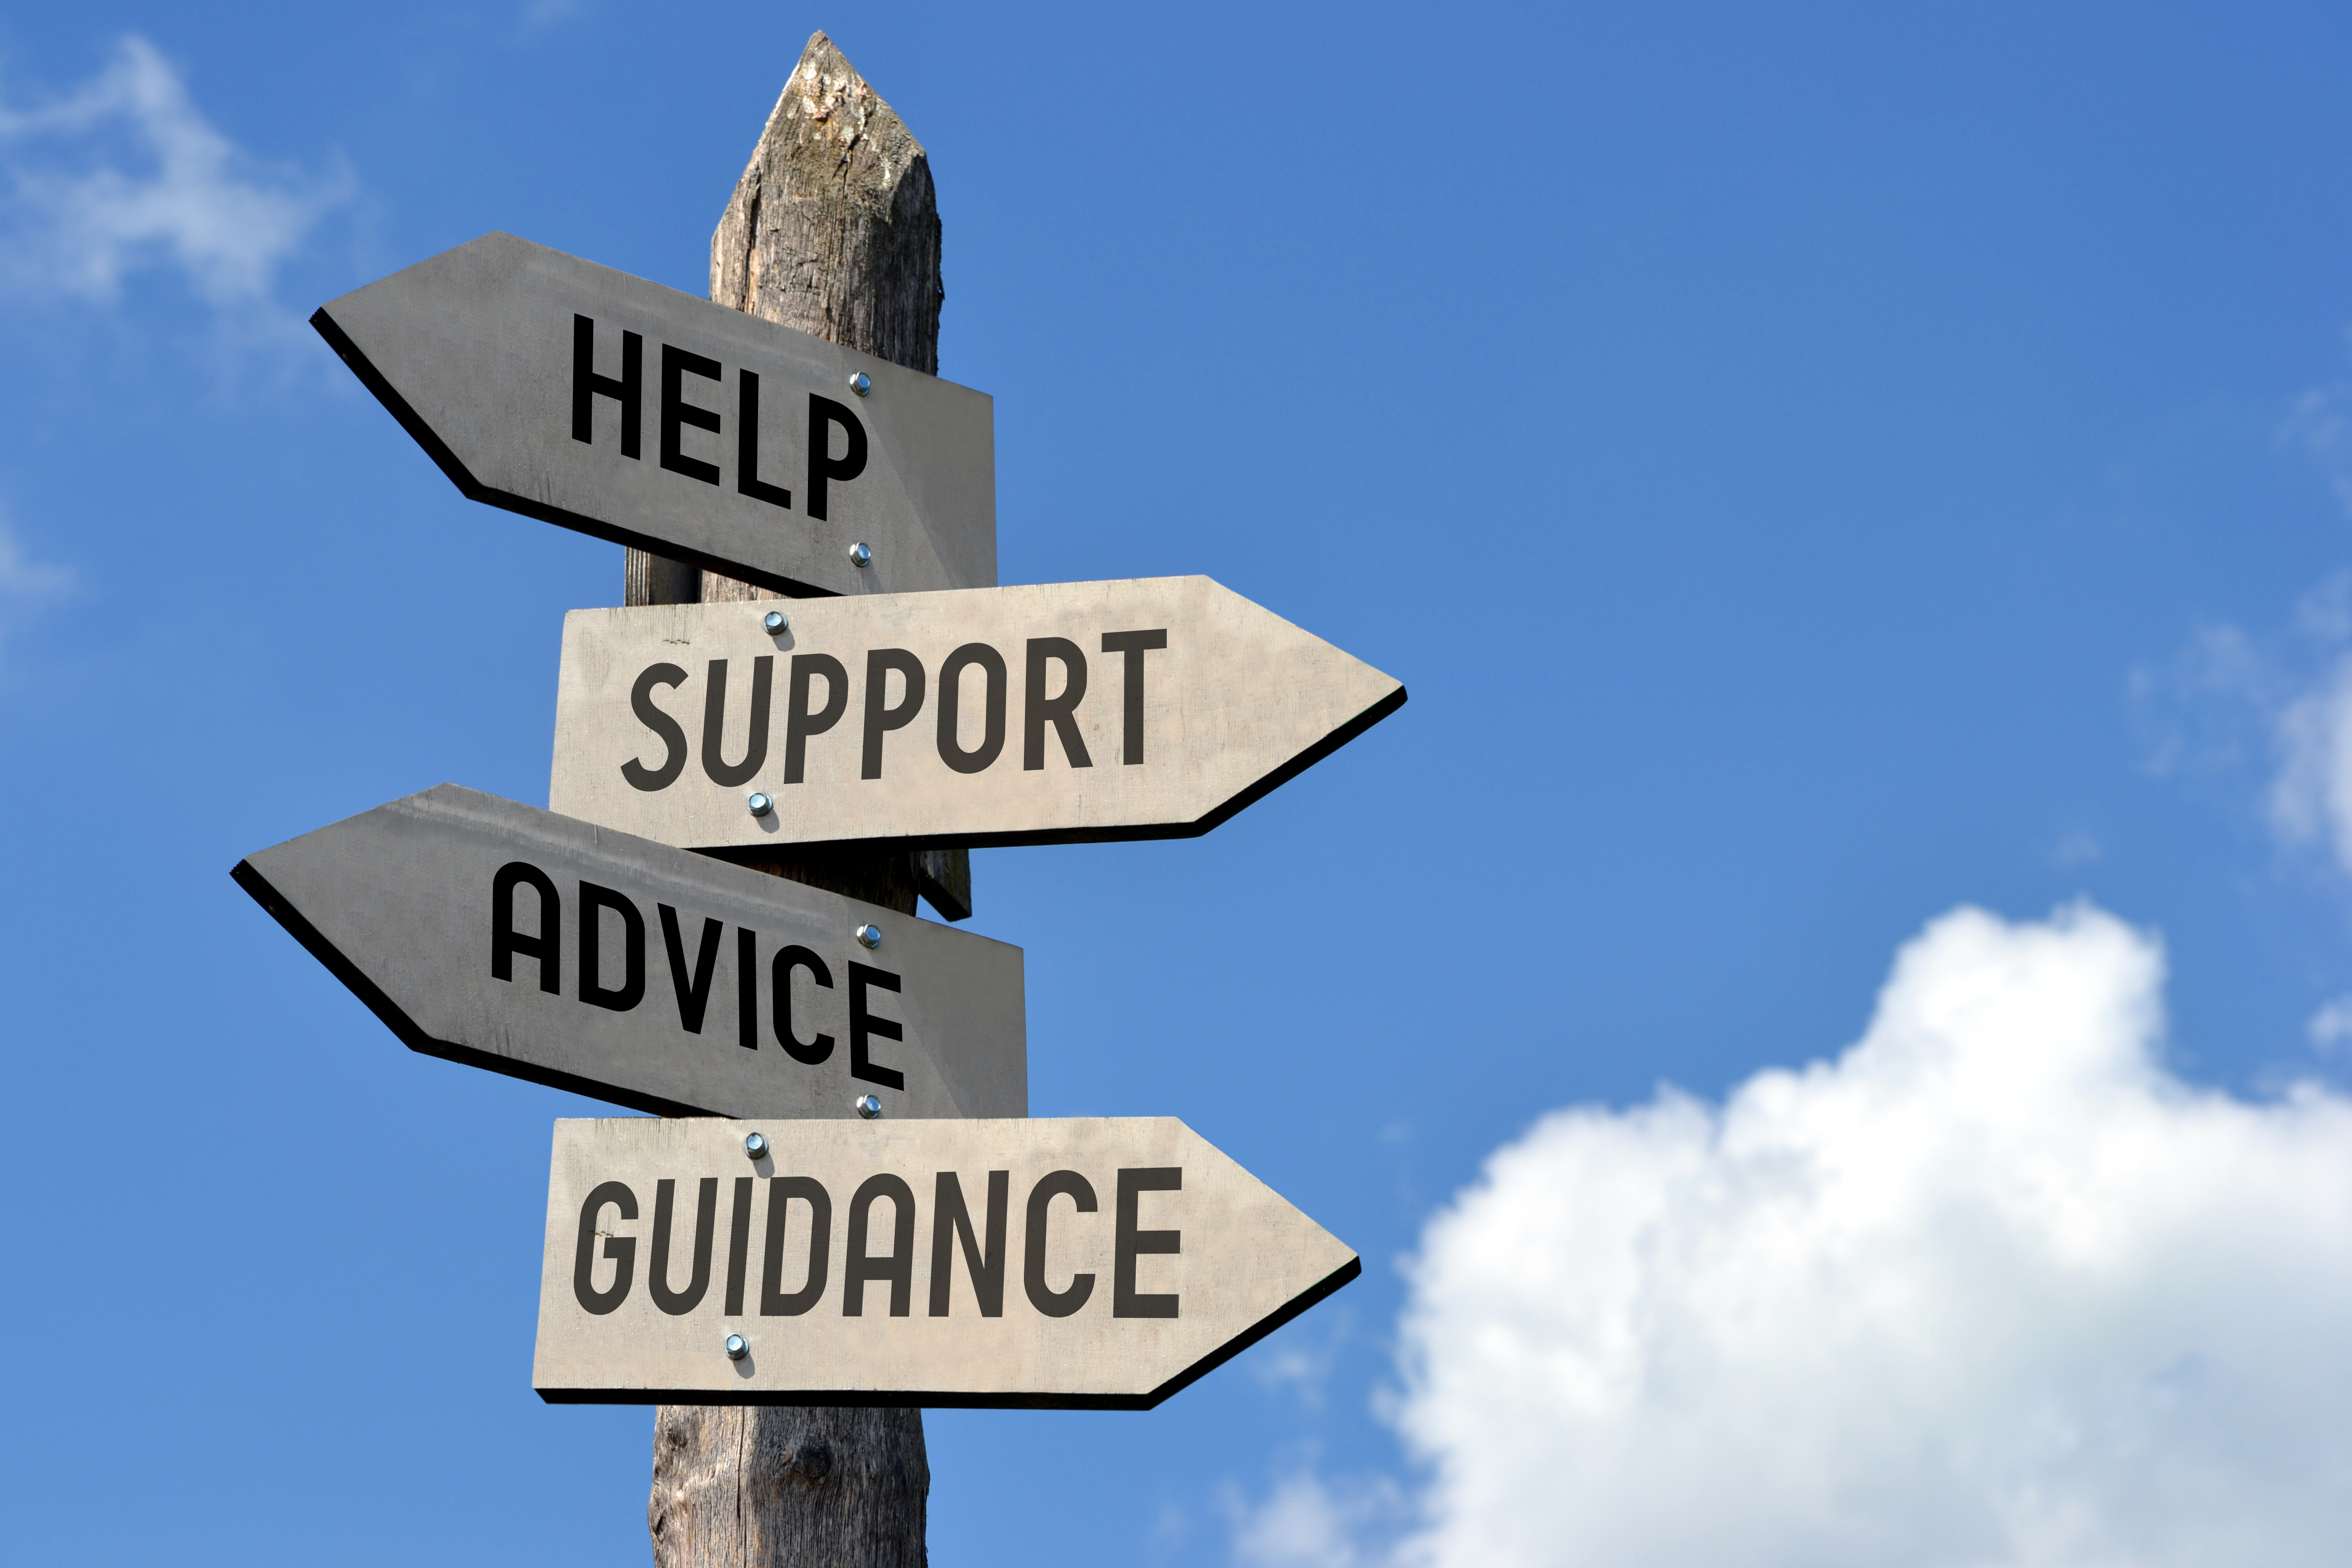 Sign indicating help, support, advice, guidance